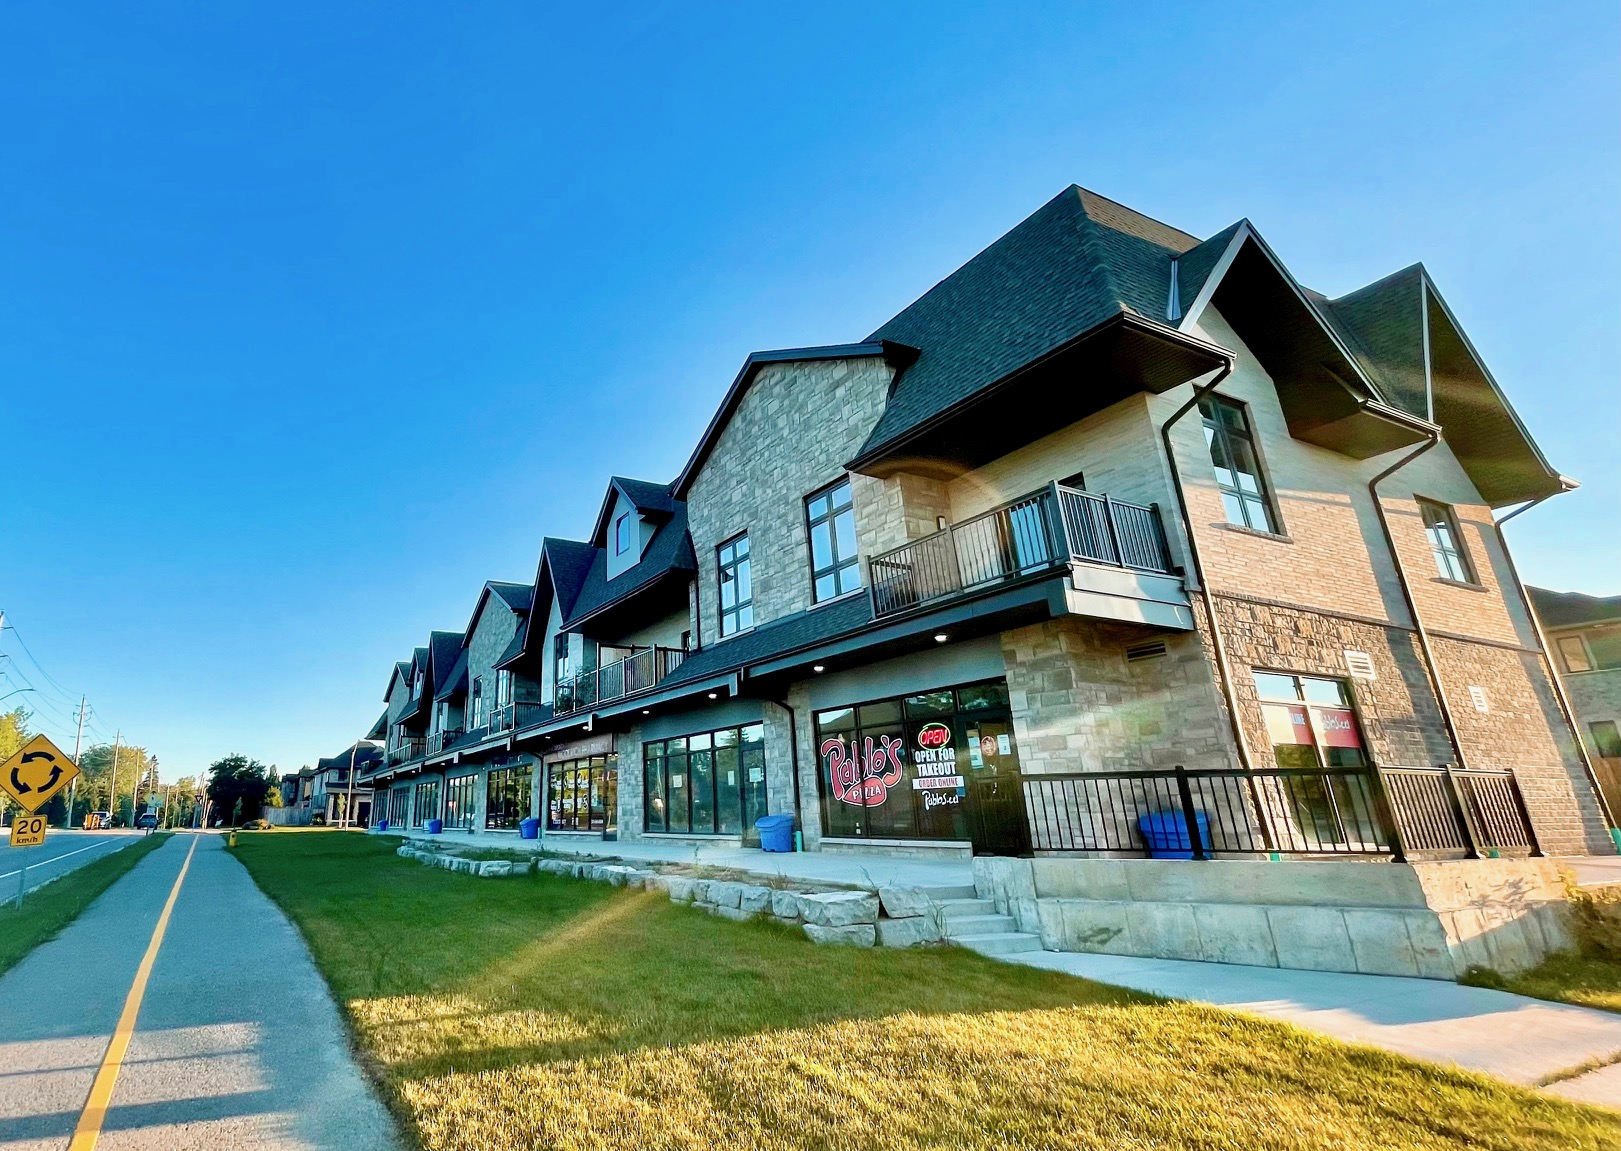 255 Woolwich Street,(Unit 104), Waterloo   Retail Condo Unit for Sale